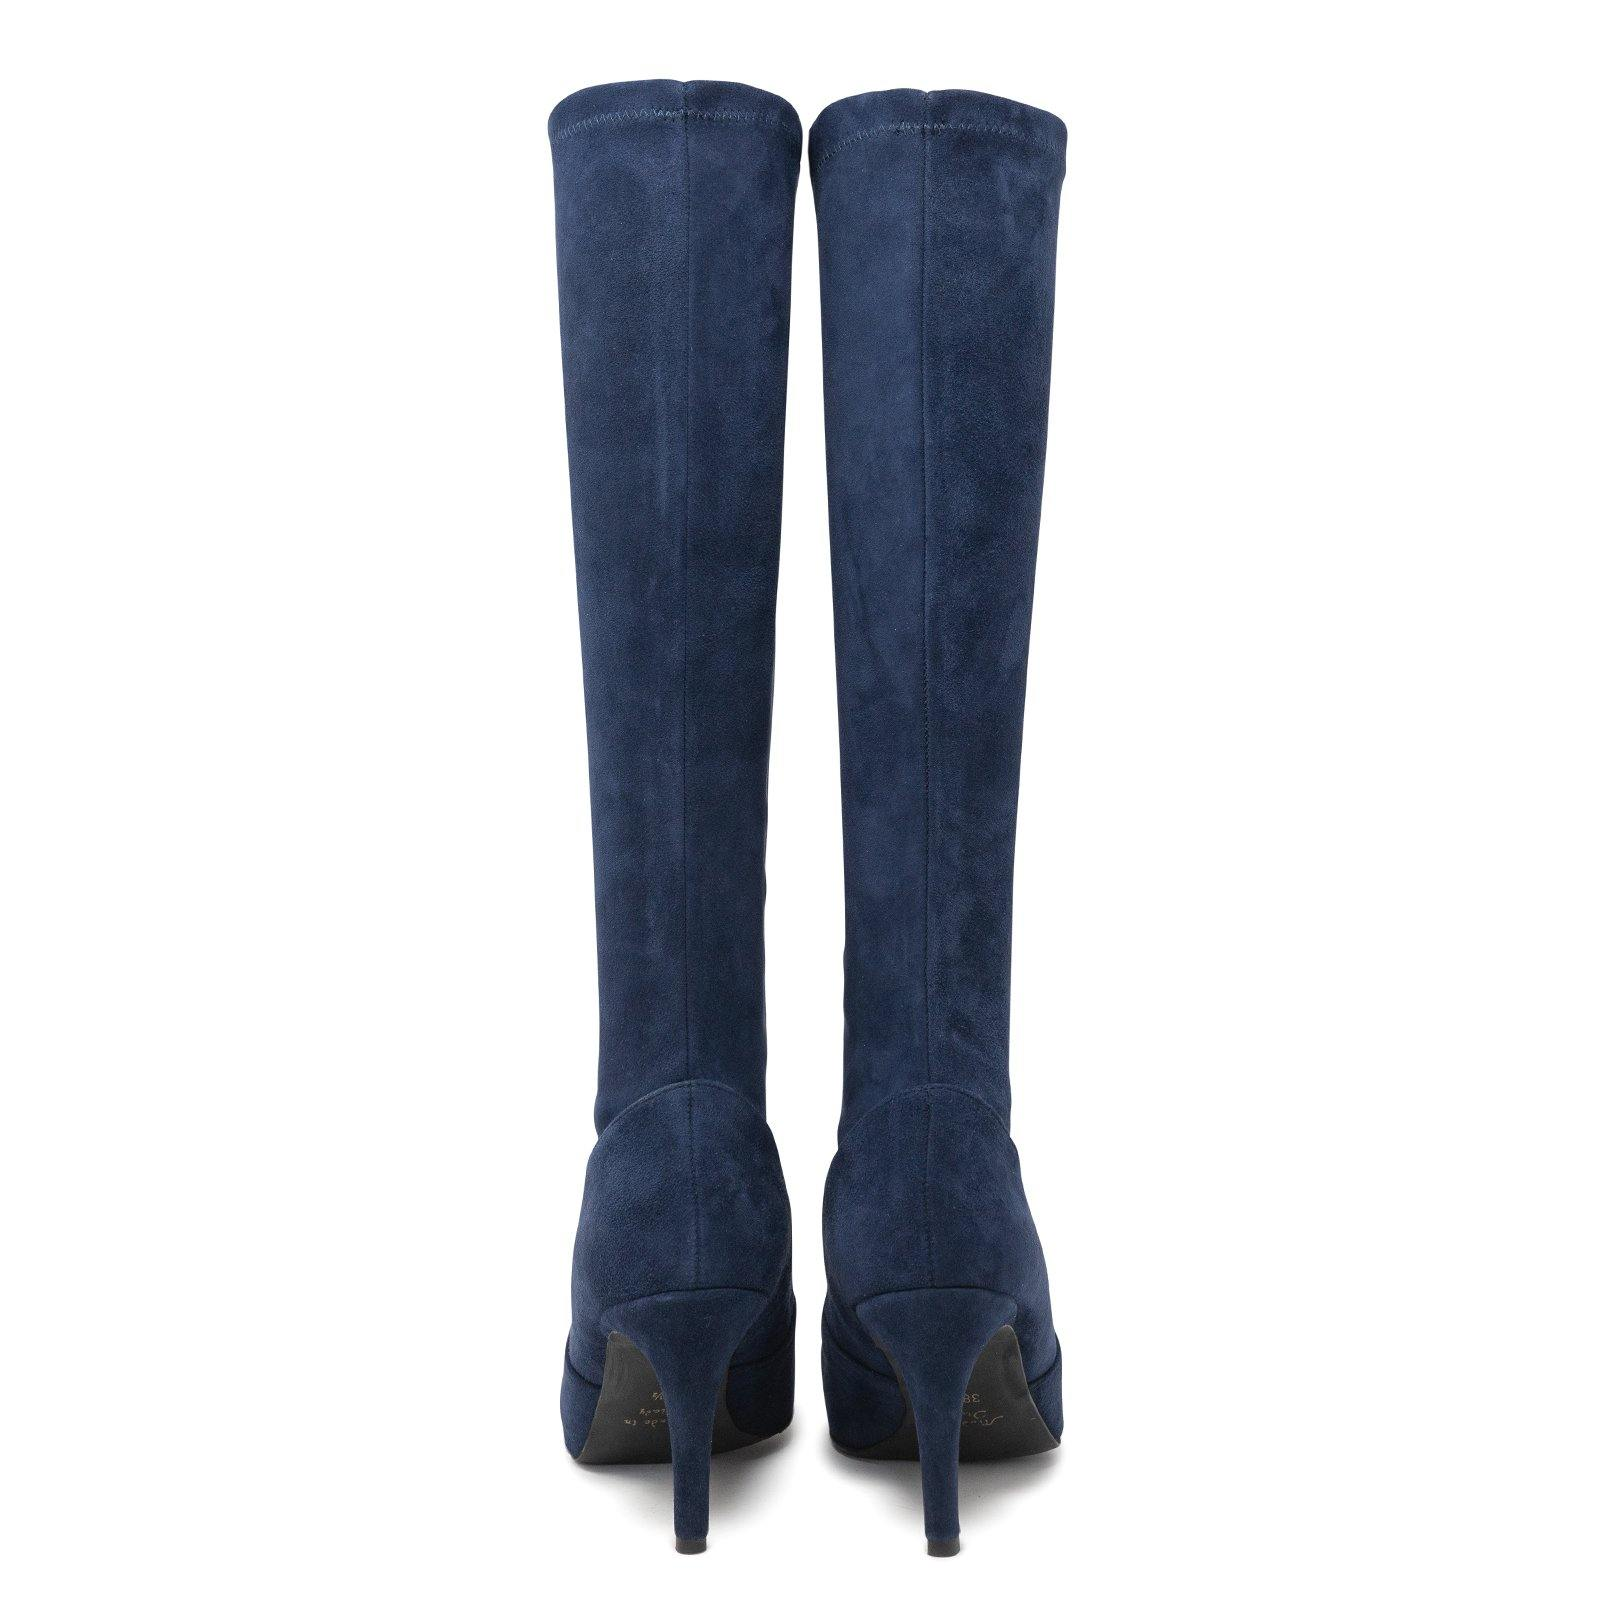 Women Suede Sock Boots in Navy Blue with thin heel